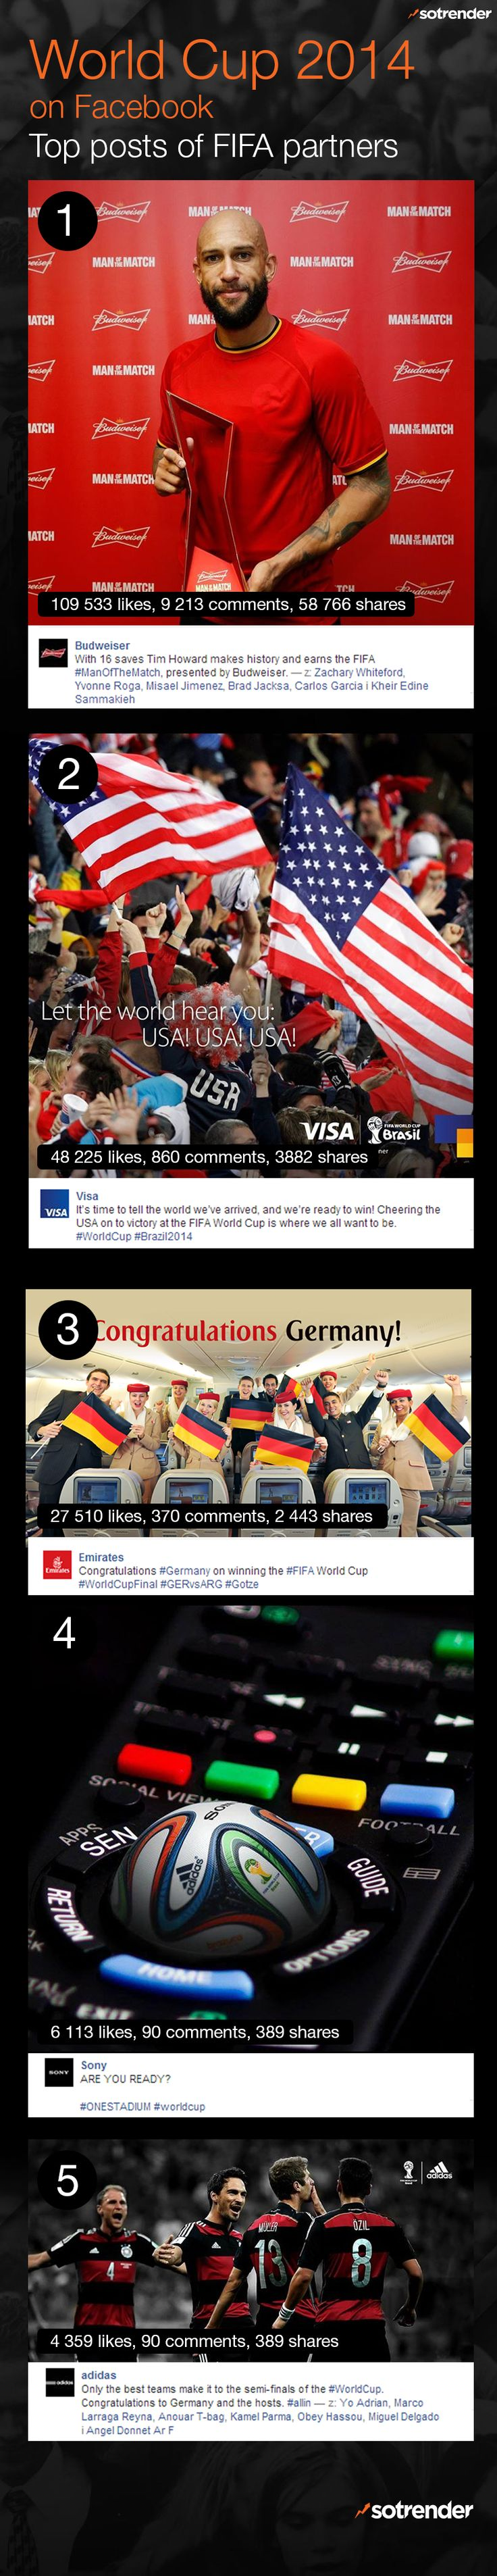 FIFA World Cup 2014 on Facebook. Top posts of FIFA partners